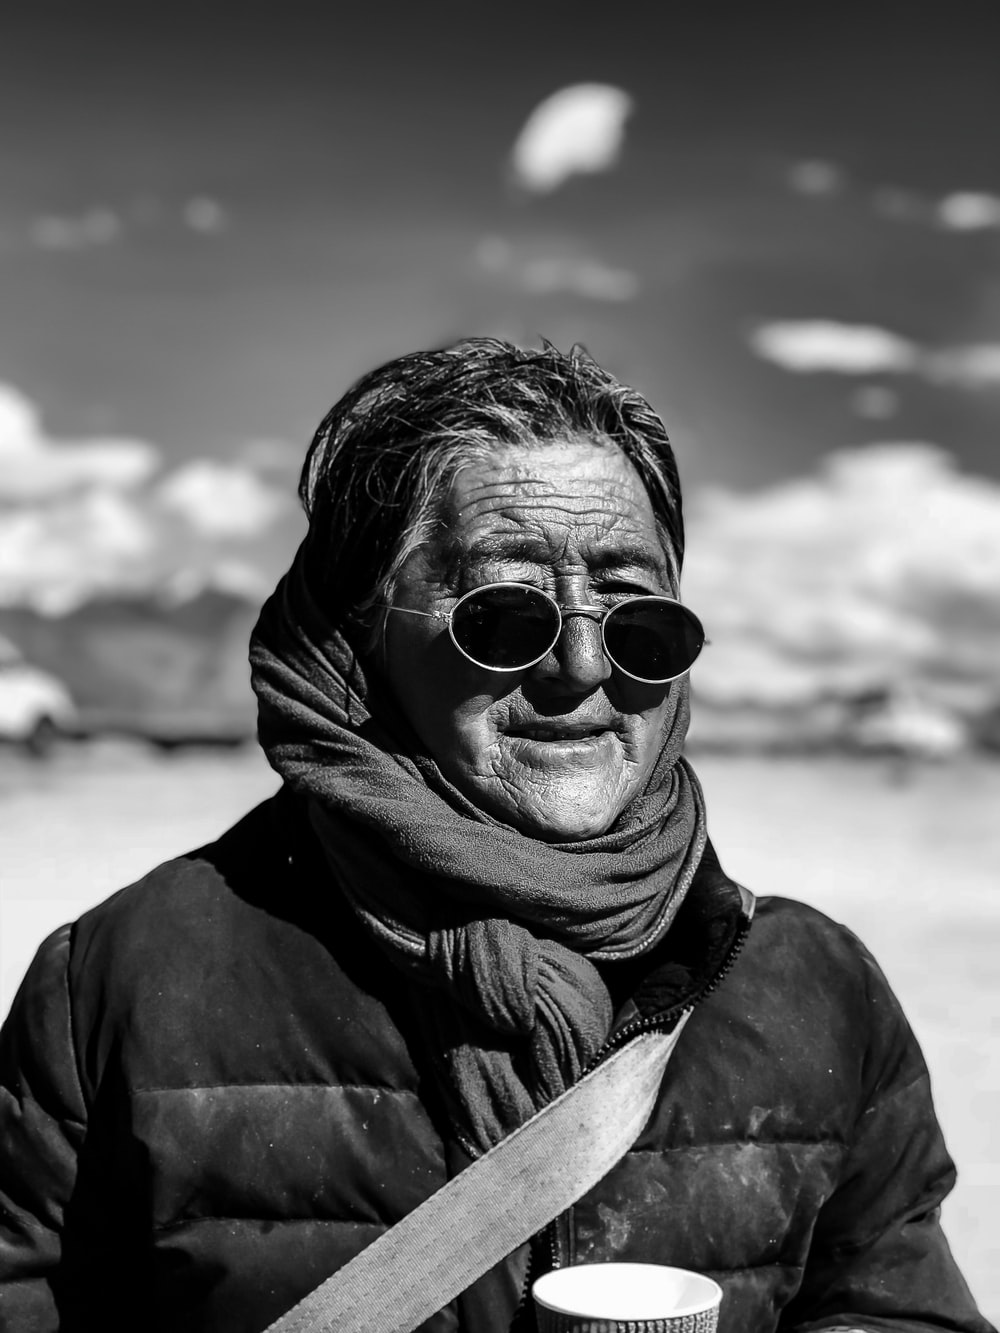 grayscale photography of woman with sunglasses